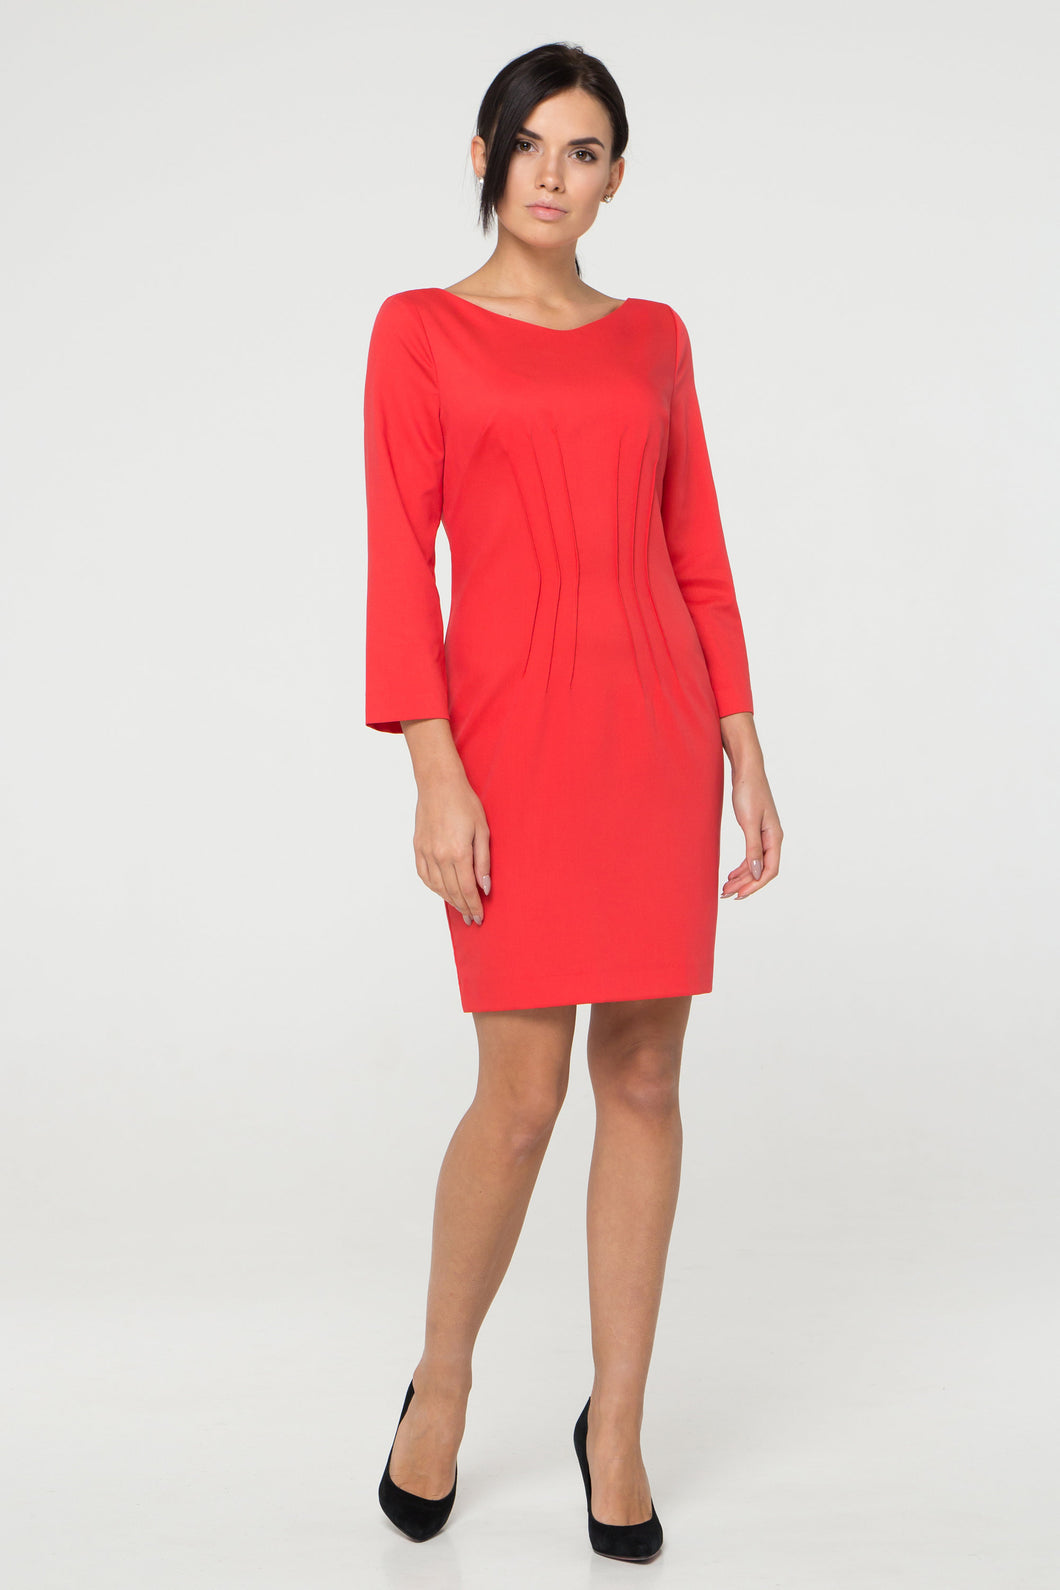 Red Inverted Dart Sheath Dress women